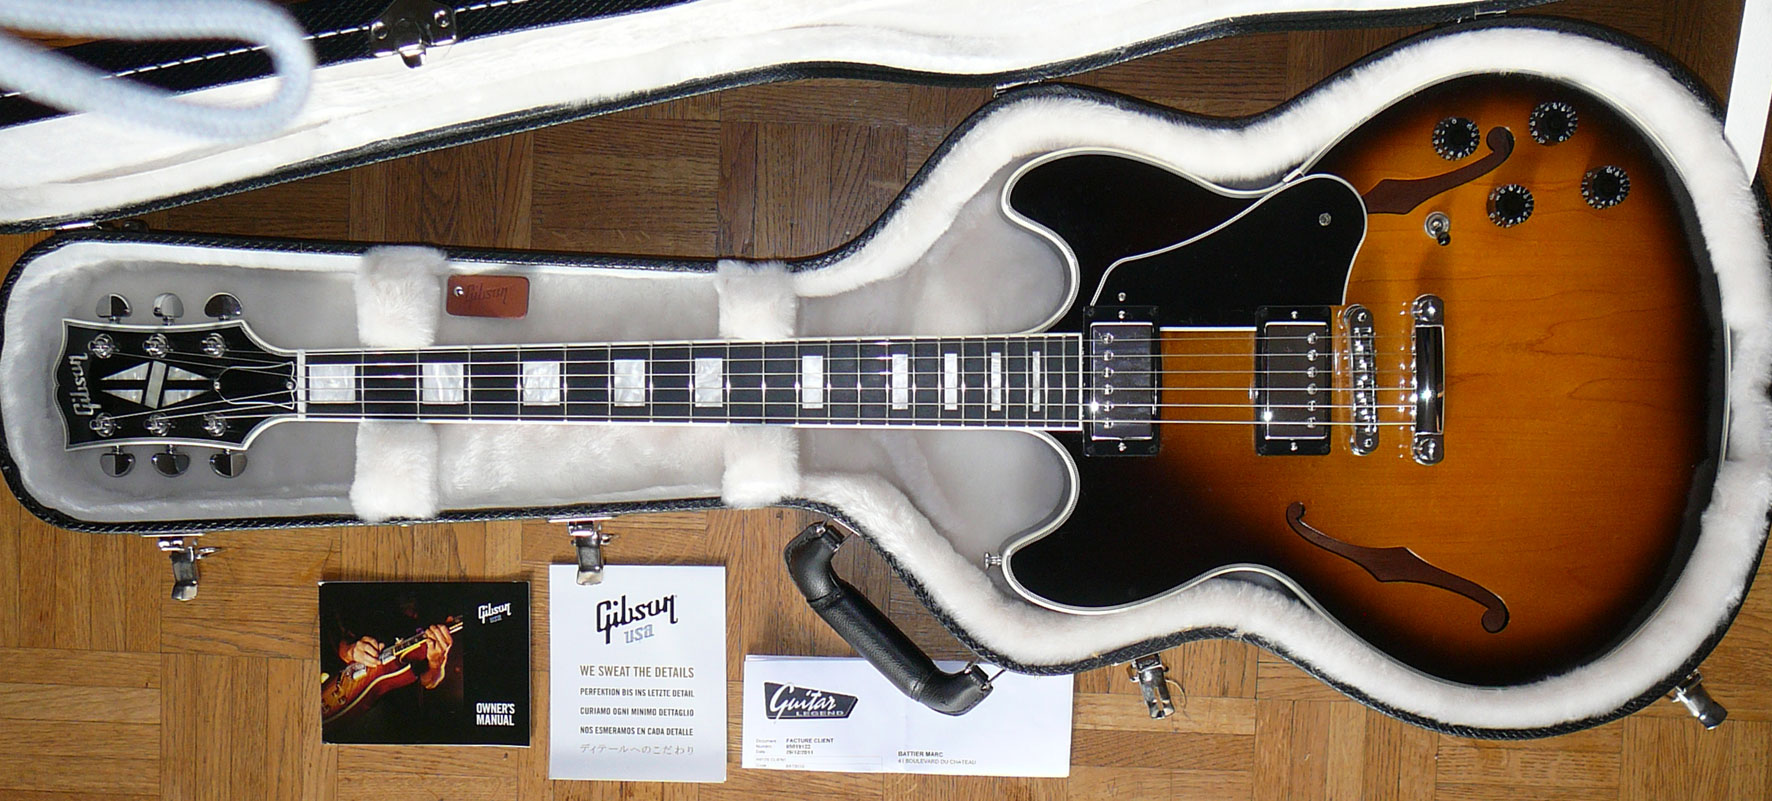 gibson-midtown-custom-548501.jpg